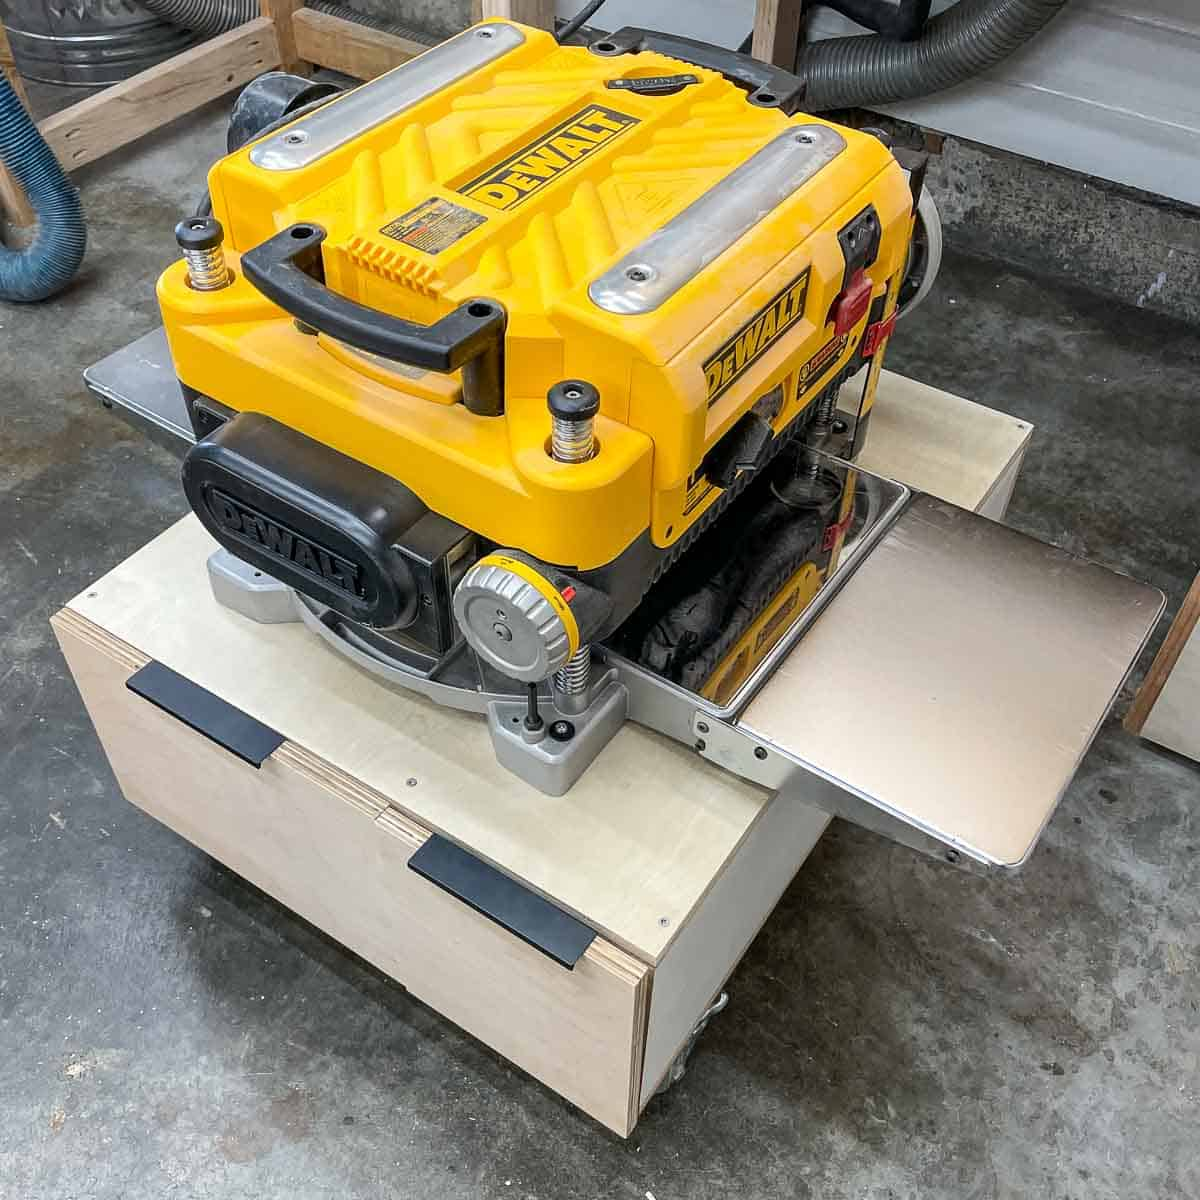 planer stand rolled out from under miter saw with infeed and outfeed tables installed